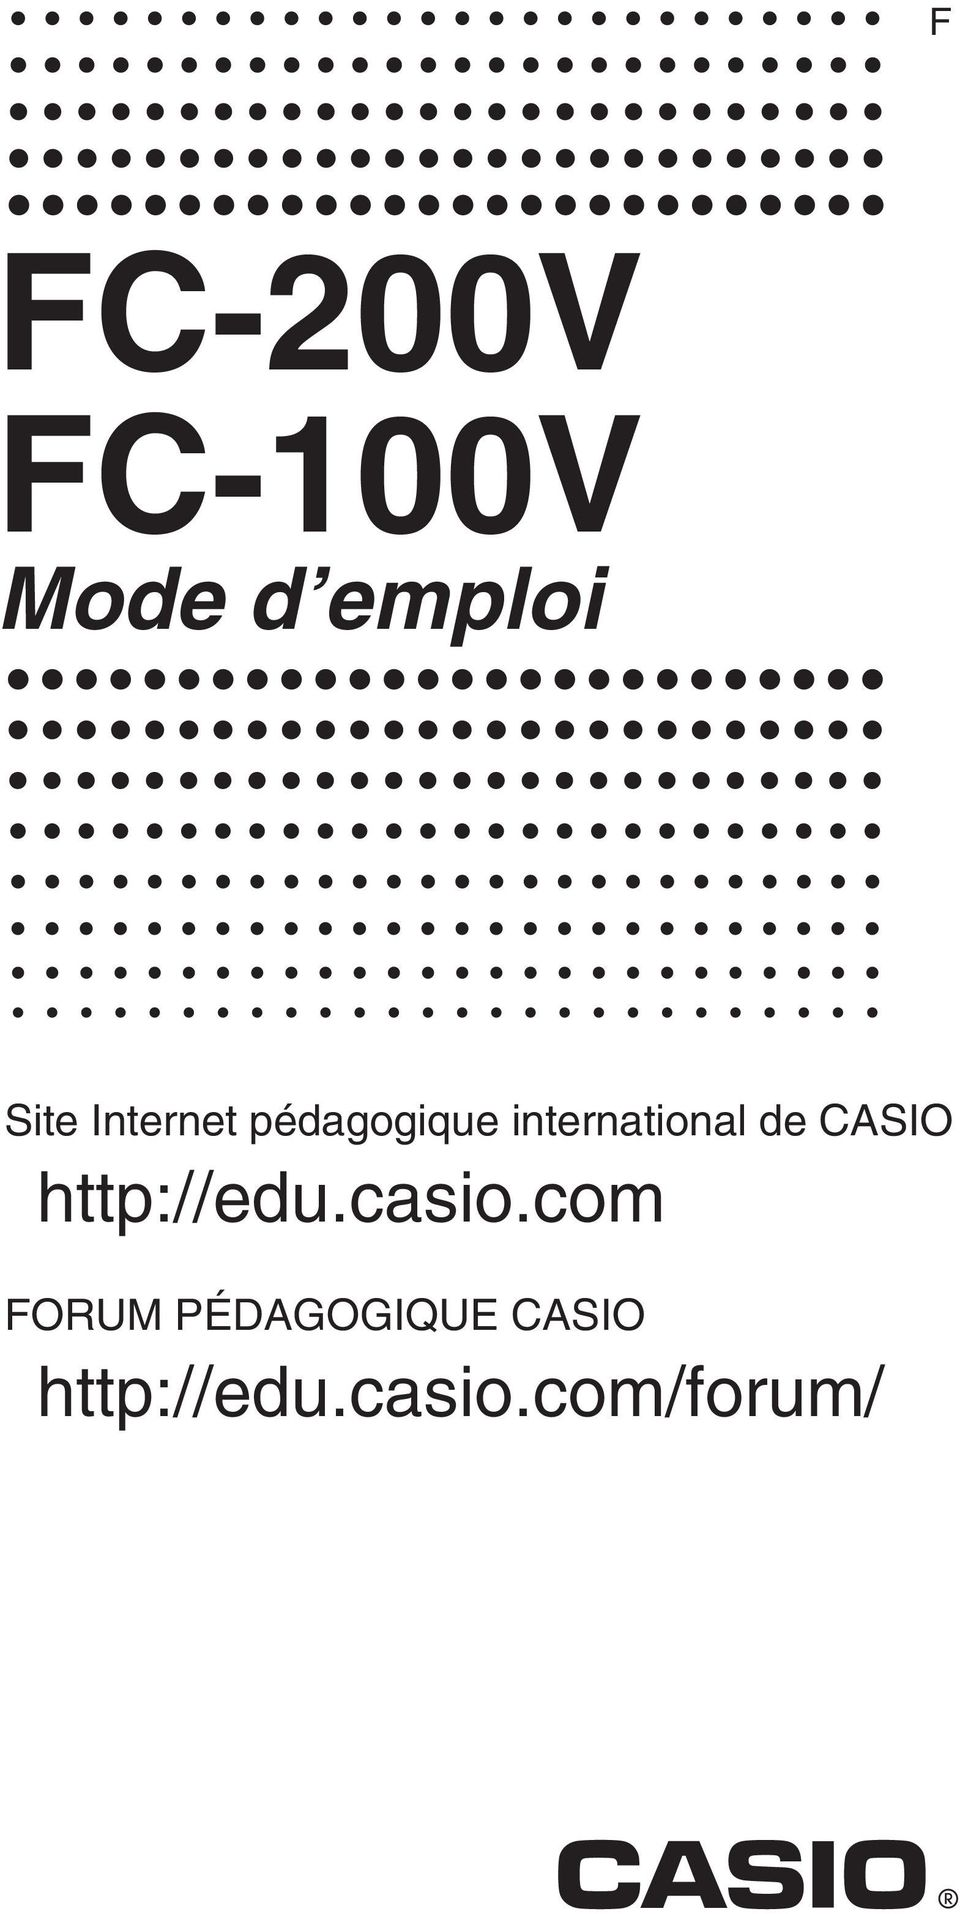 CASIO http://edu.casio.